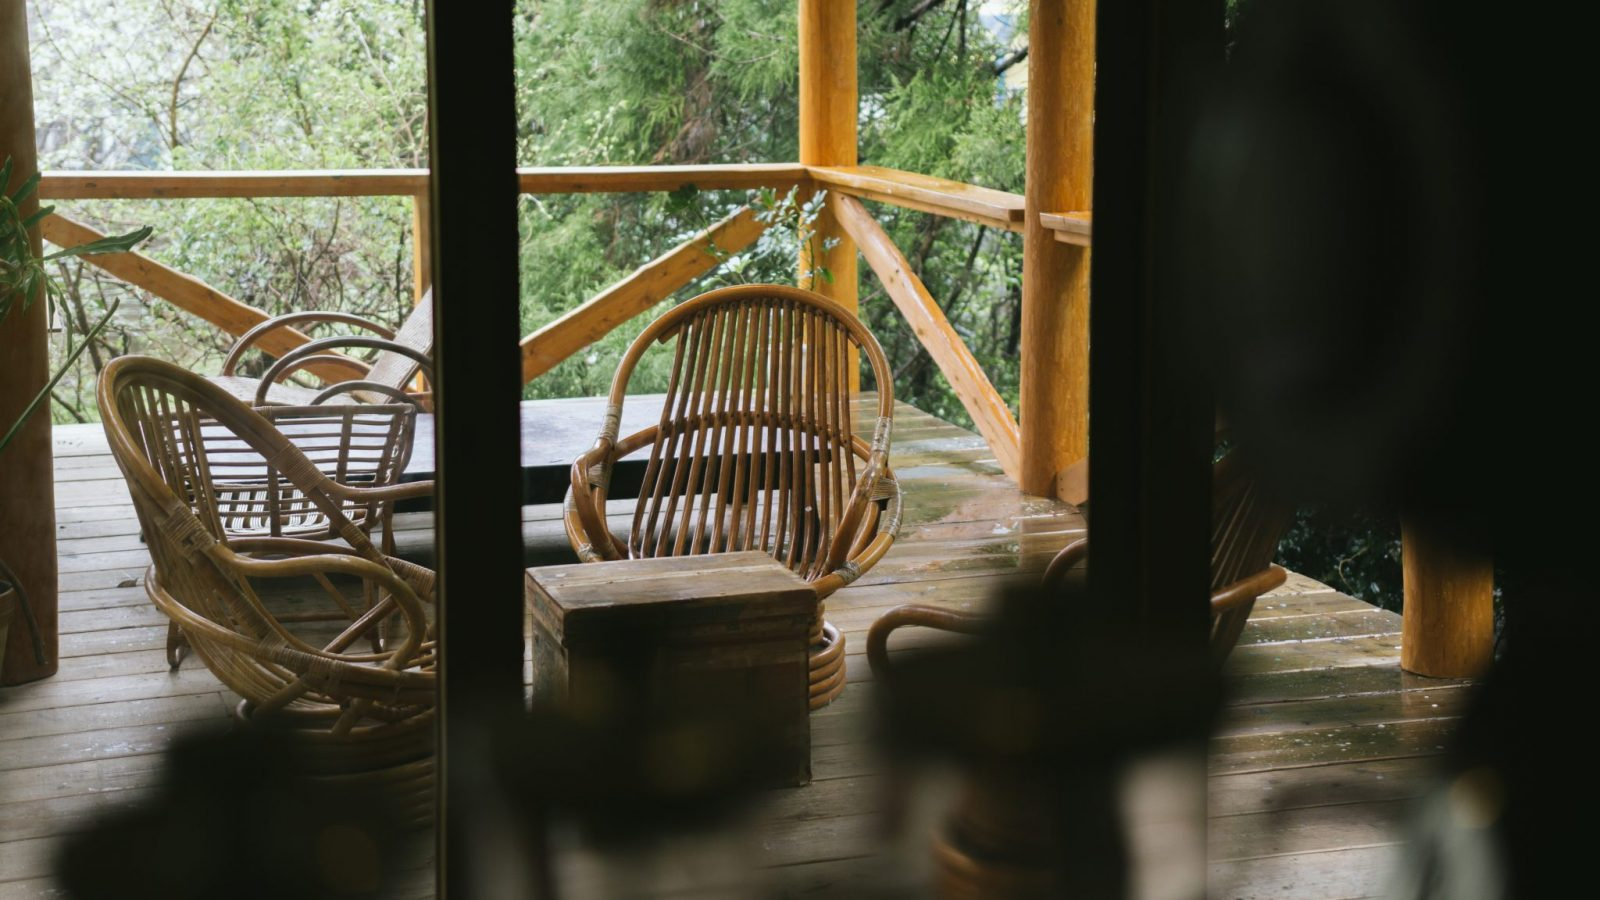 Covered deck in rainy day shimoda